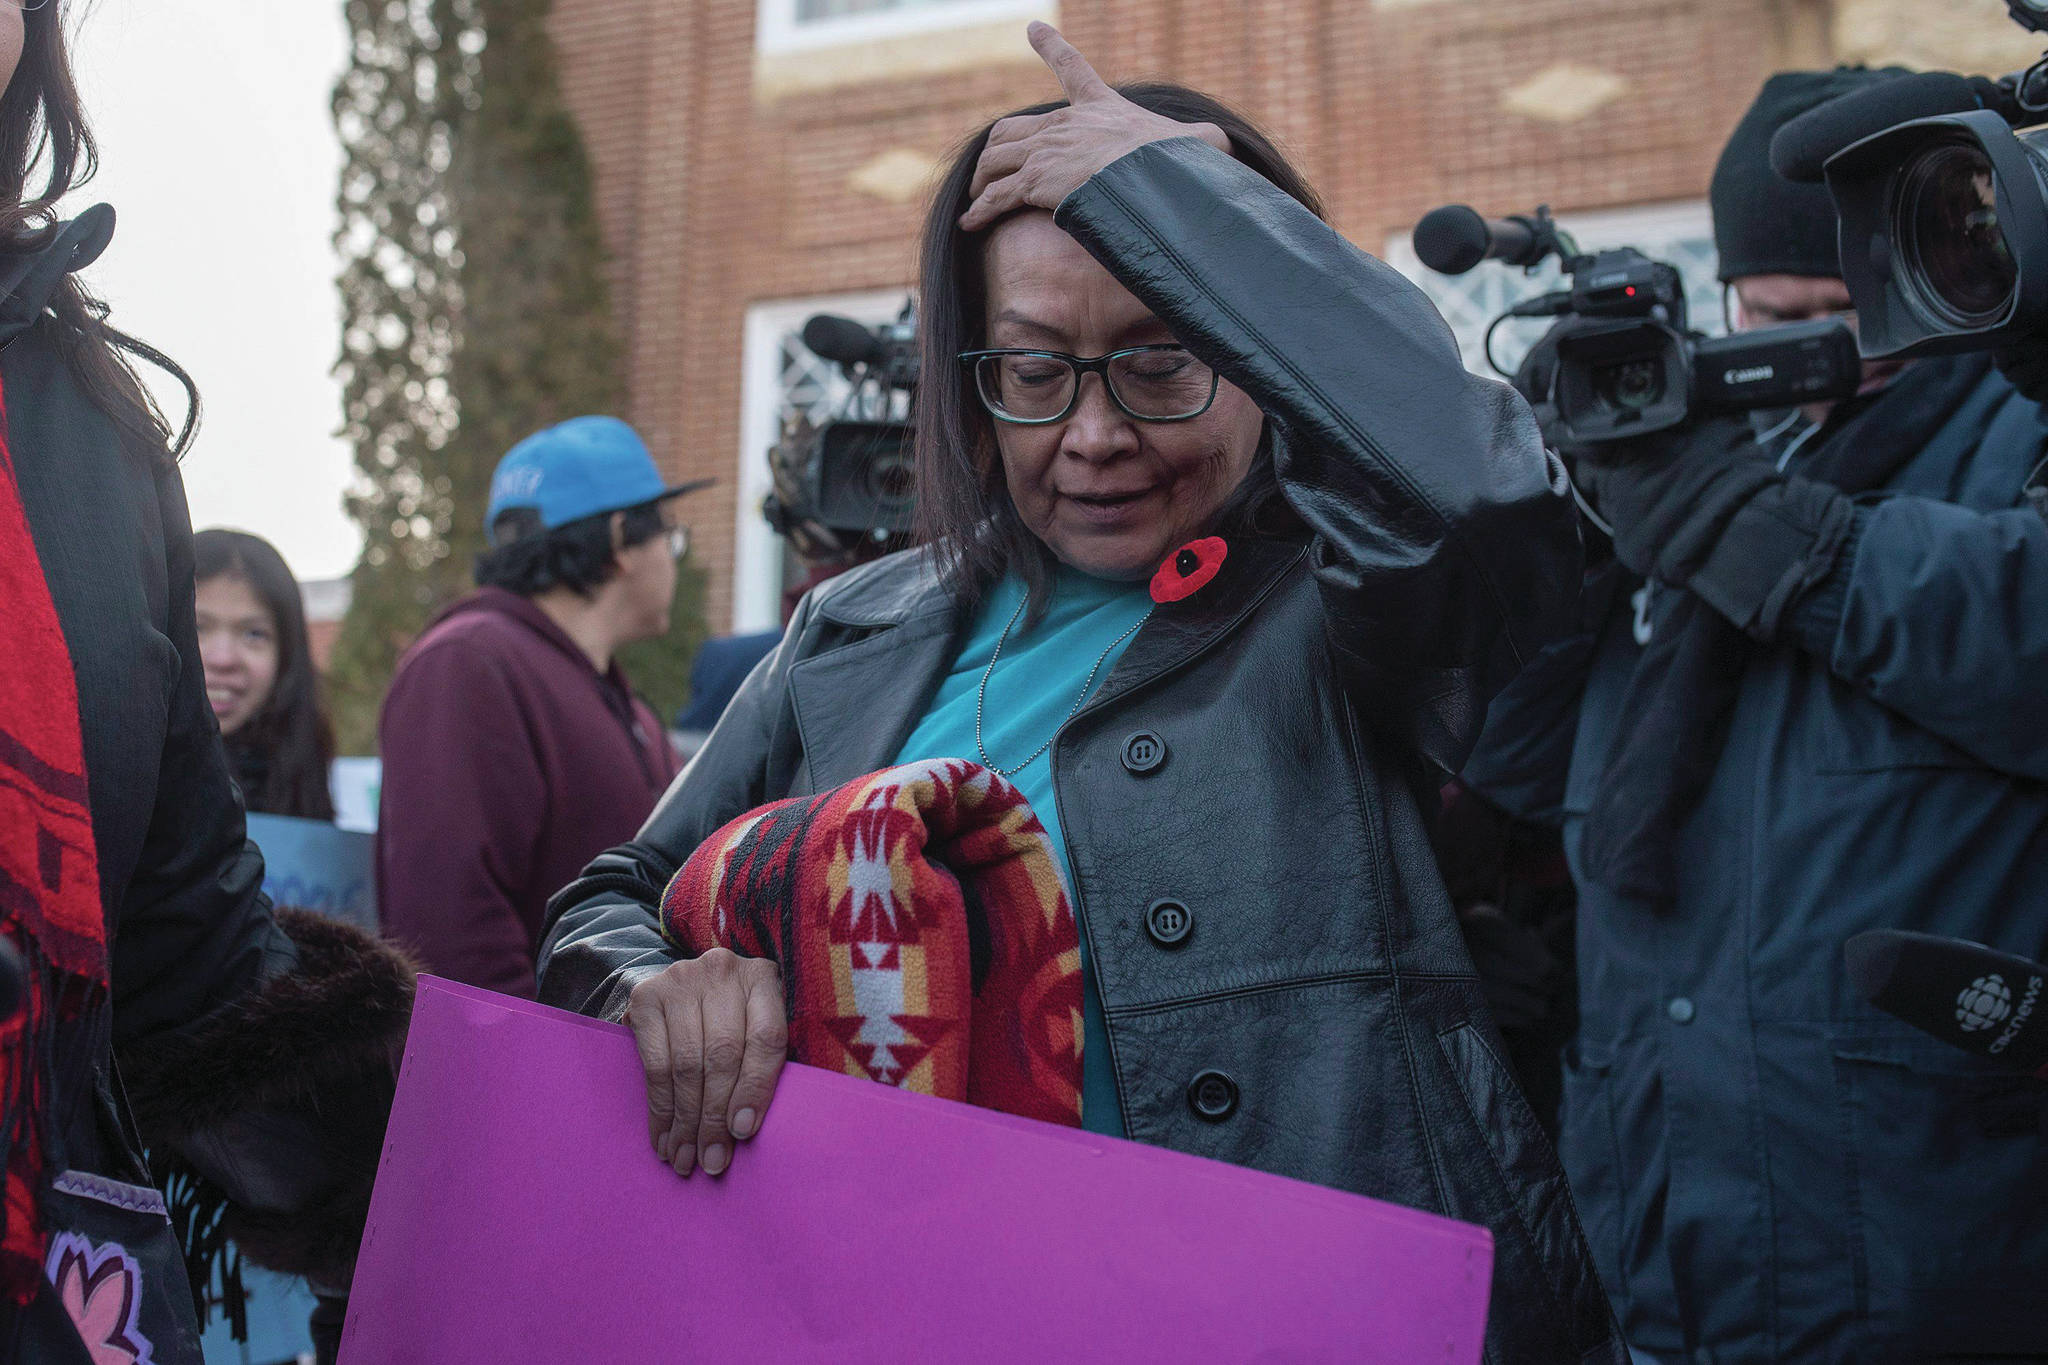 Debbie Baptiste, the mother of Colten Boushie, leaves during a lunch recess on the day of closing arguments in the trial of Gerald Stanley, the farmer accused of killing 22-year-old Indigenous man Colten Boushie, in Battleford, Sask. on Thursday, February 8, 2018. THE CANADIAN PRESS/Liam Richards